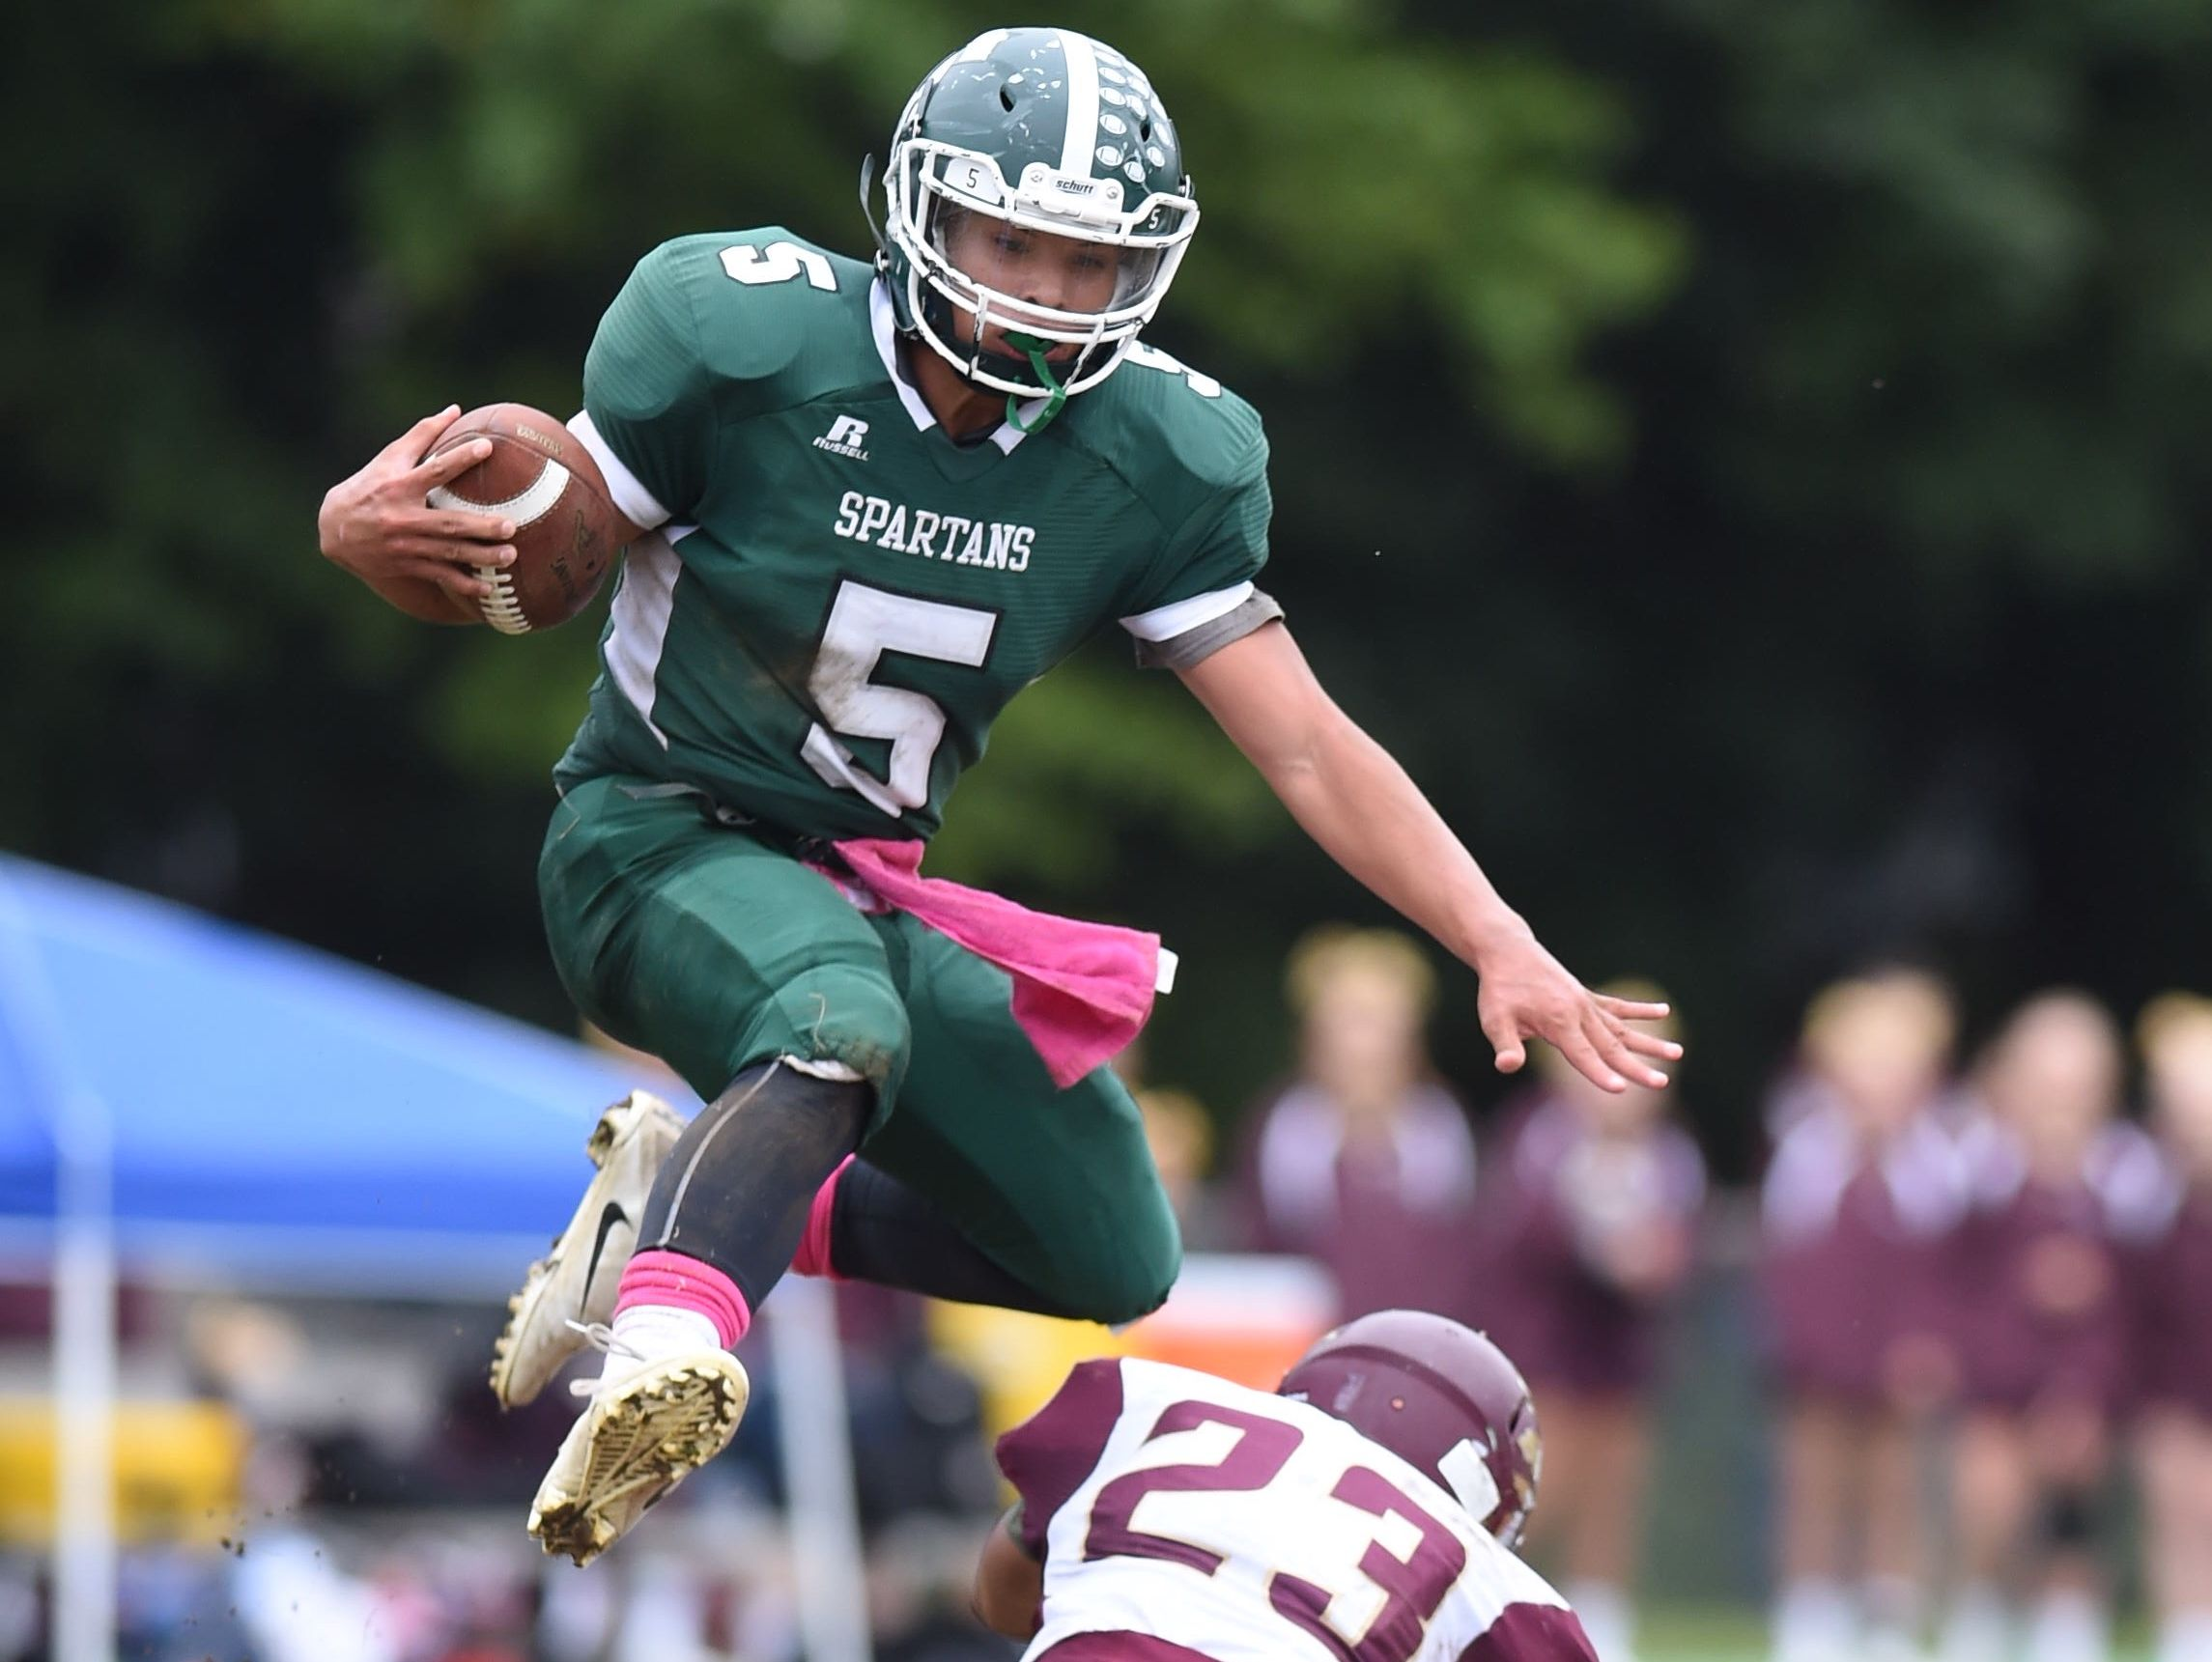 Spackenkill's Camron Abalos jumps over O'Neill's James Matautia during a game on Oct. 1, 2016.